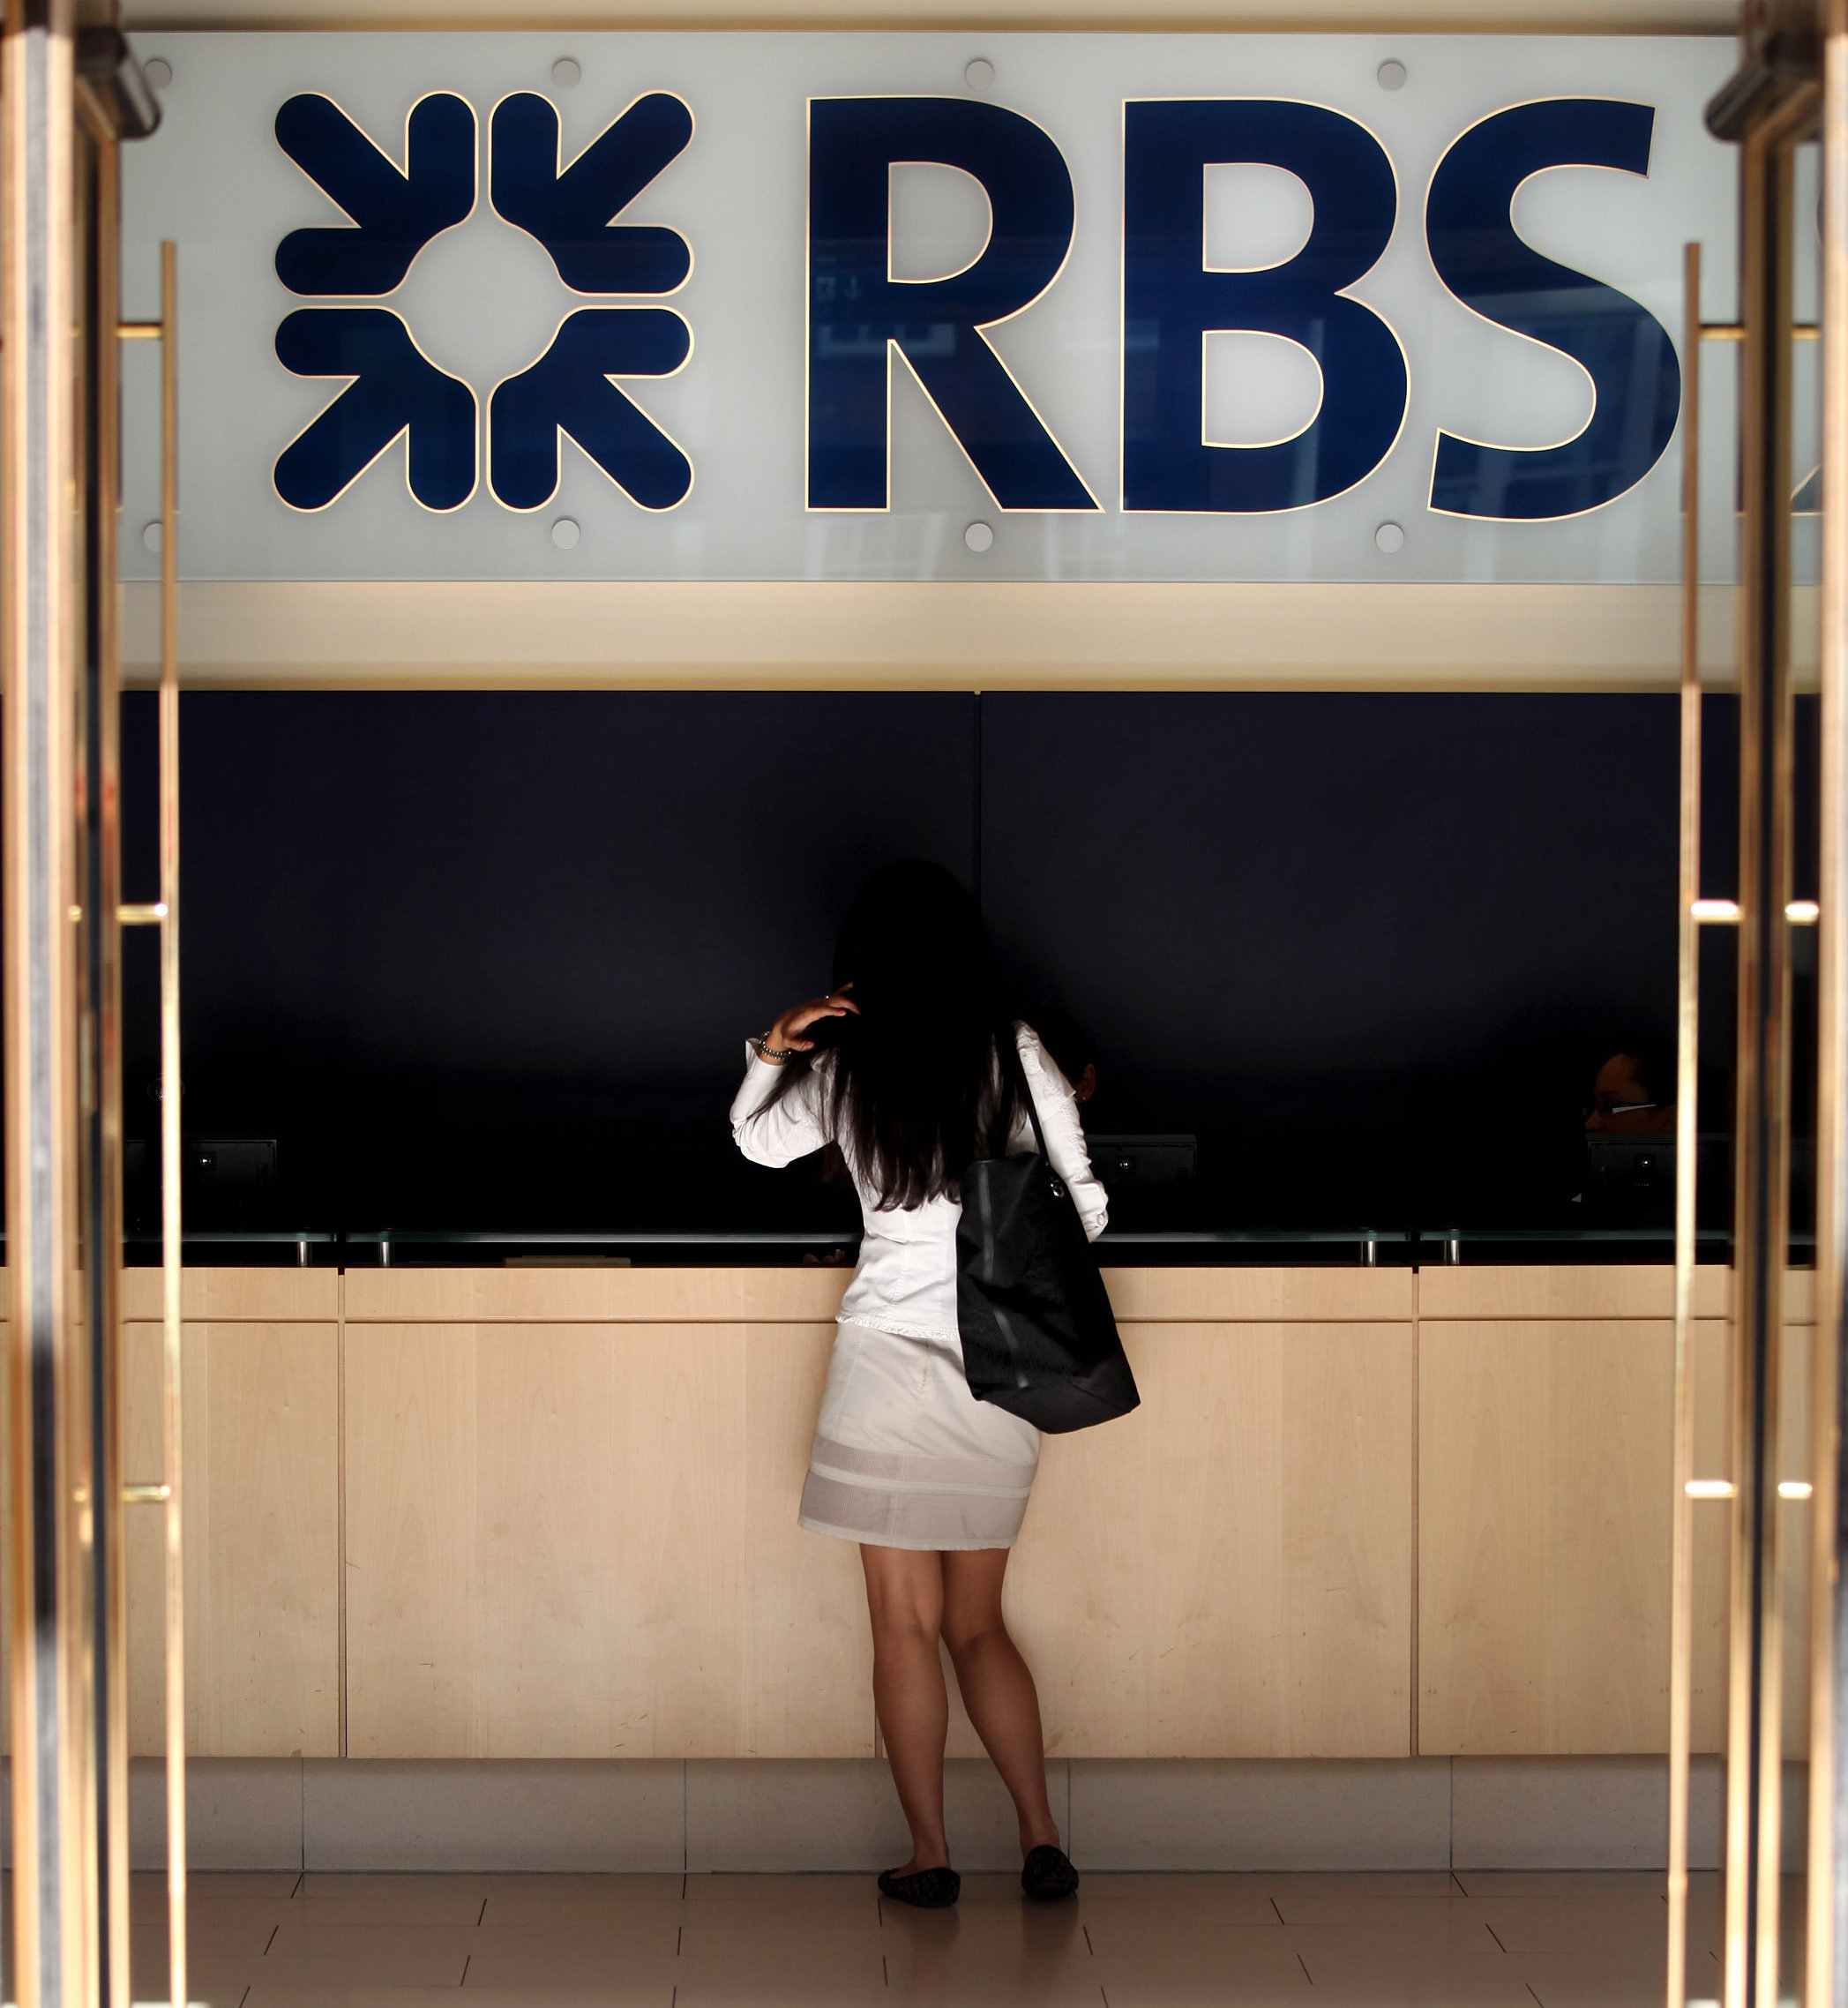 RBS has launched a £400m compensation scheme for GRG claimants, but it has consistently denied claims that senior managers knew what was happening in the unit